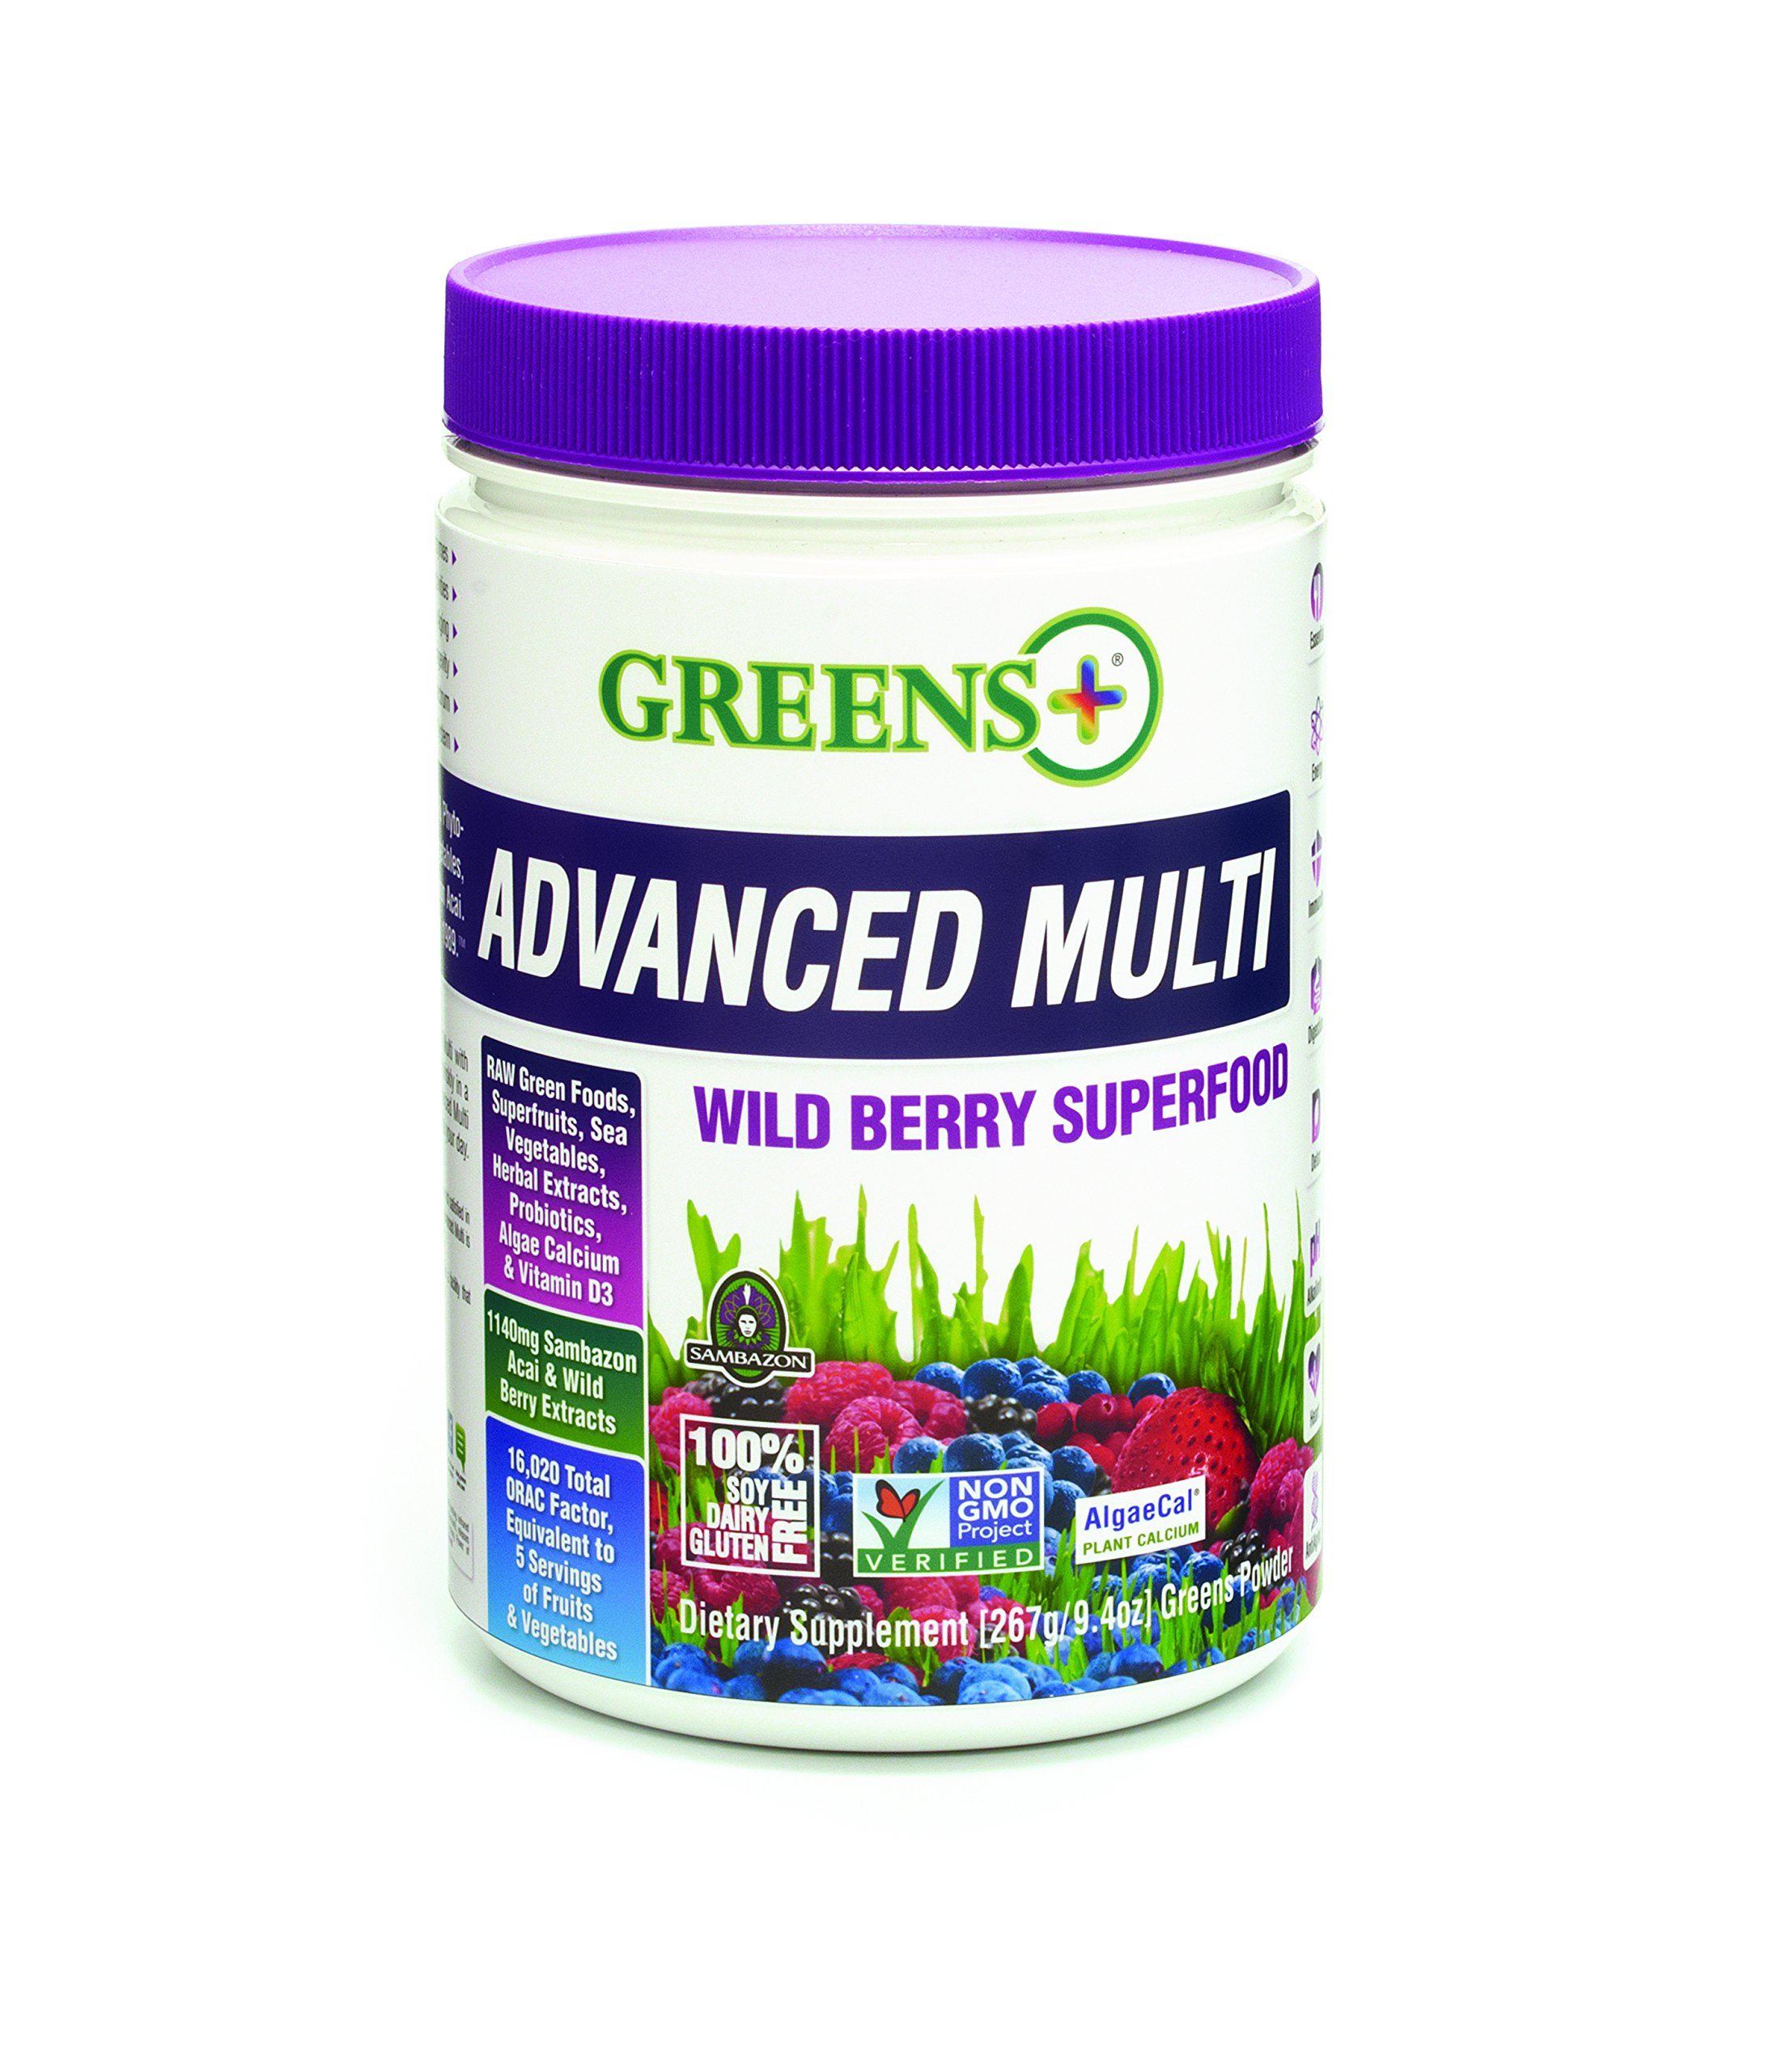 Greens Plus Advanced Multi Wild Berry Super Food | Dietary Supplement | Soy Dairy & Gluten free Greens Powder - 9.4 Oz